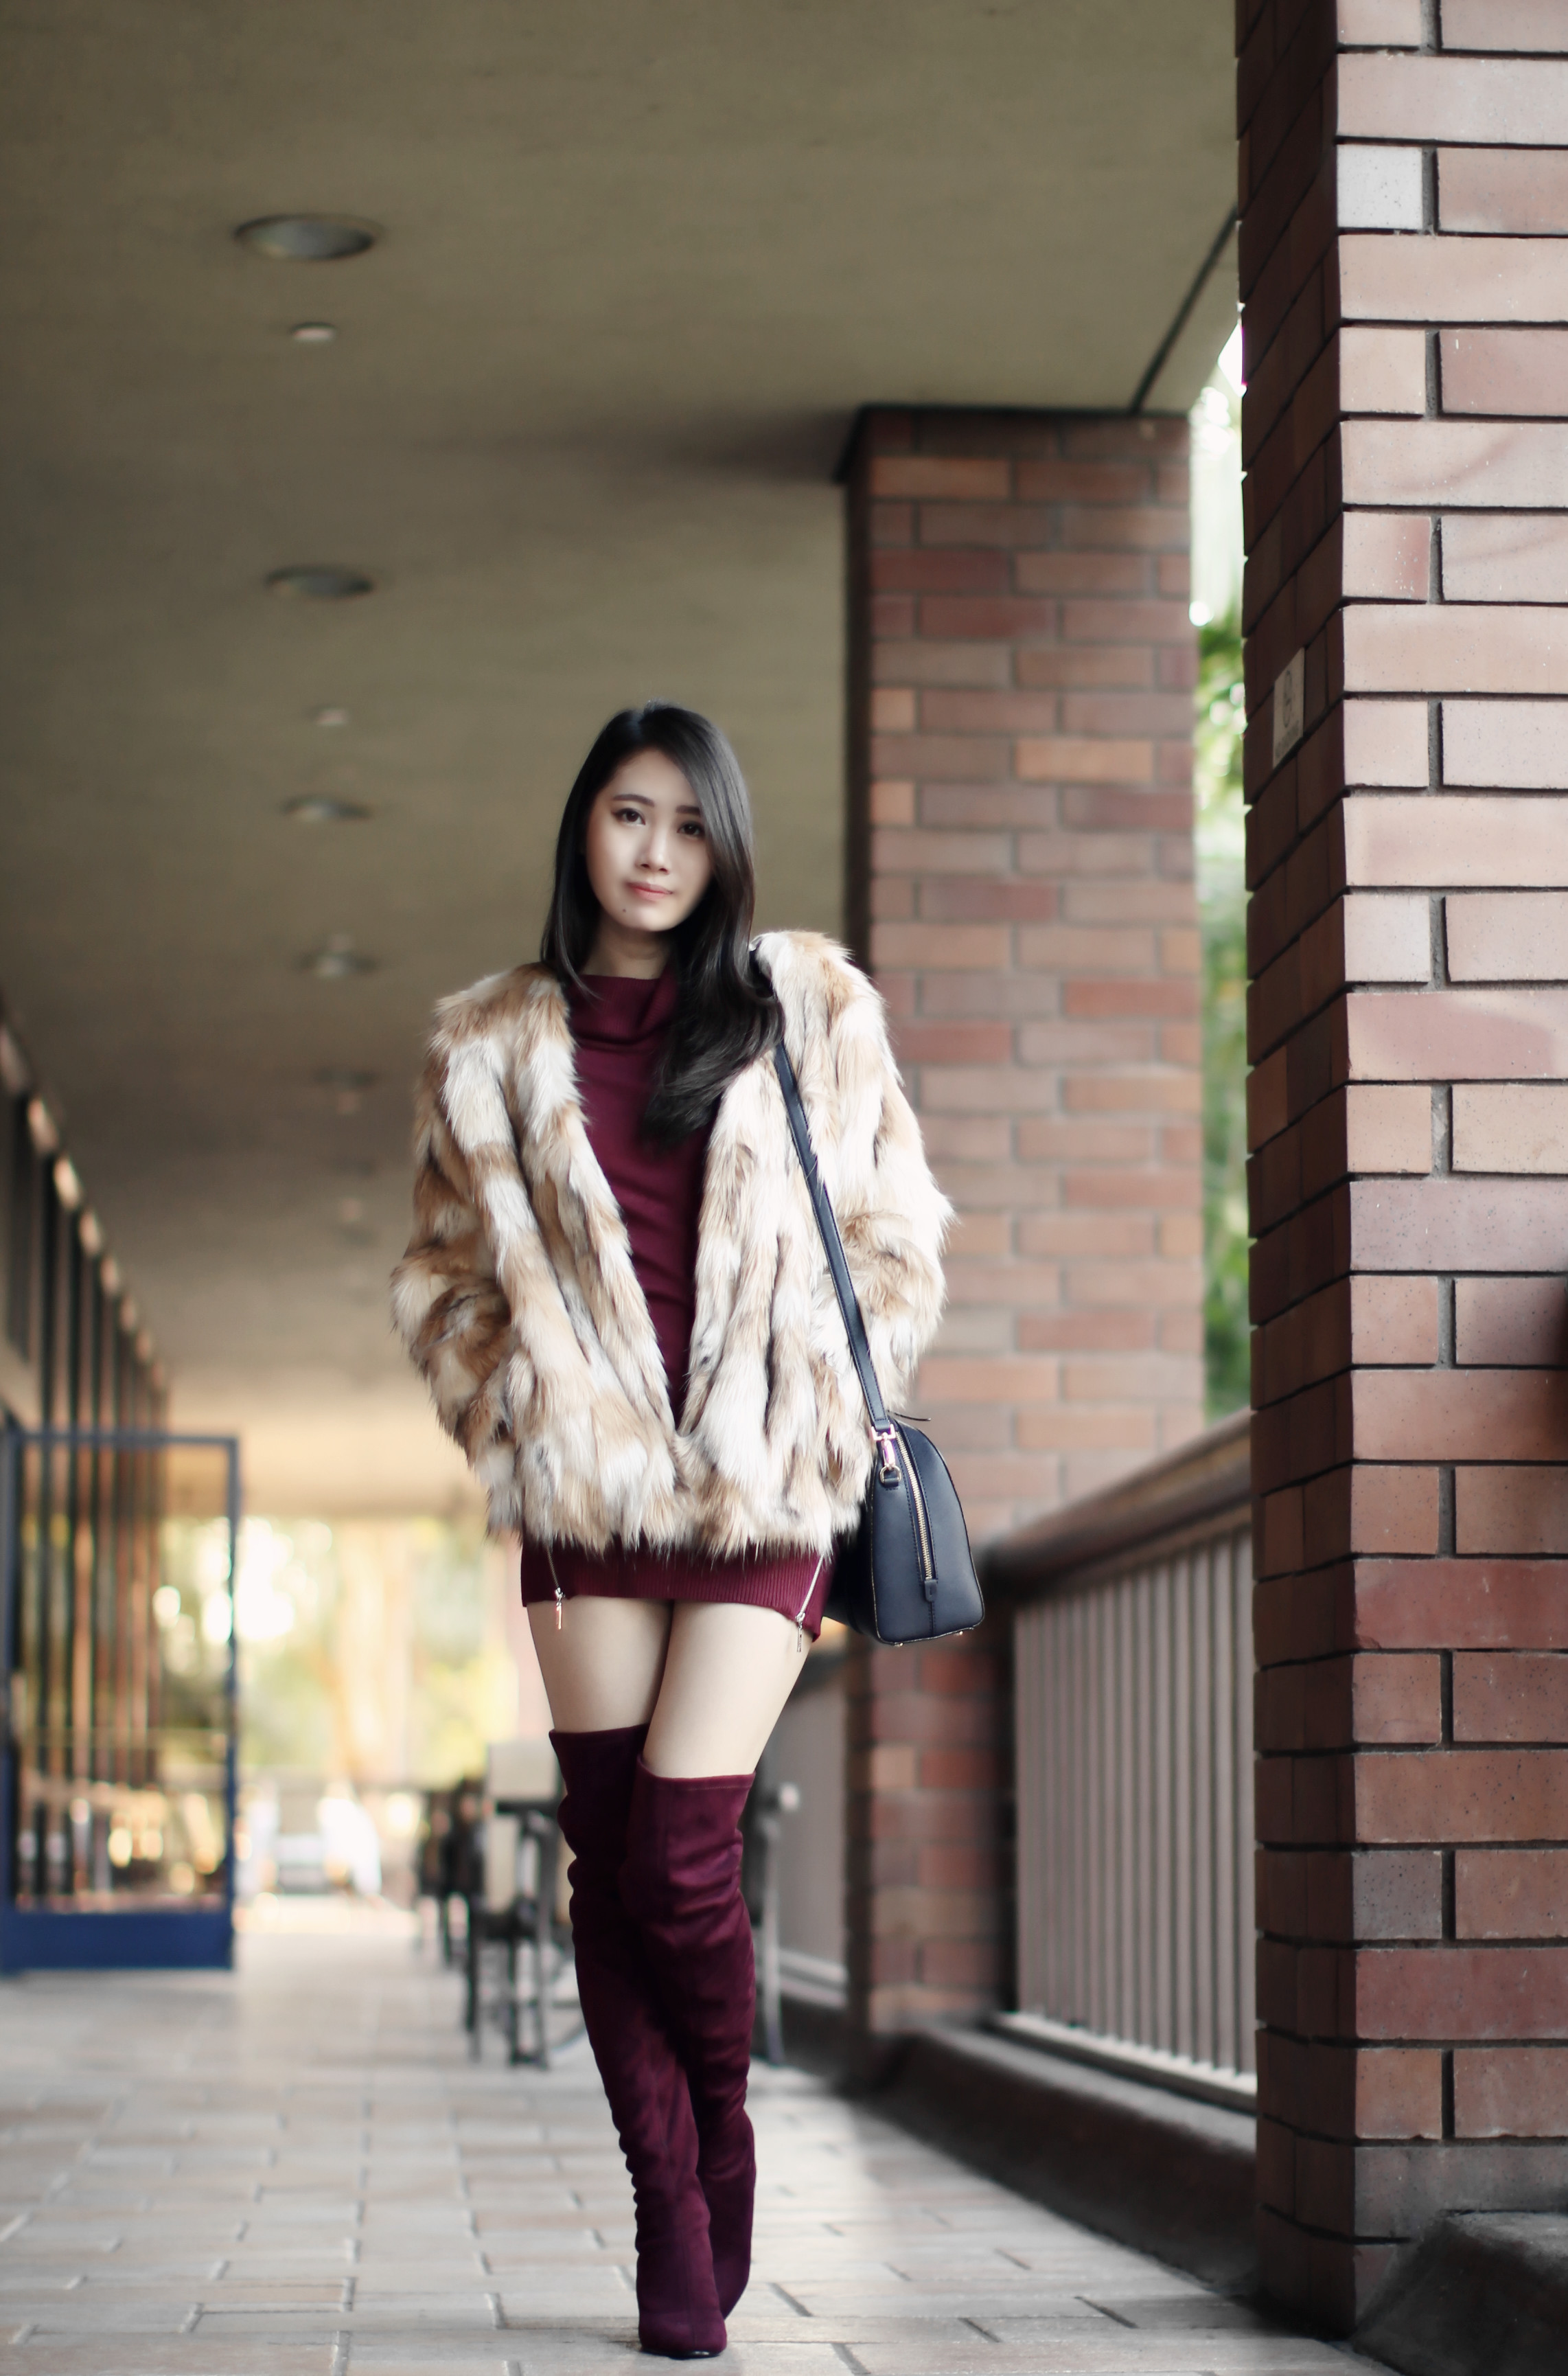 3777-ootd-fashion-style-outfitoftheday-wiwt-vincecamuto-fauxfur-otkboots-fallfashion-forever21-f21-hollister-koreanfashion-sponsored-elizabeeetht-clothestoyouuu